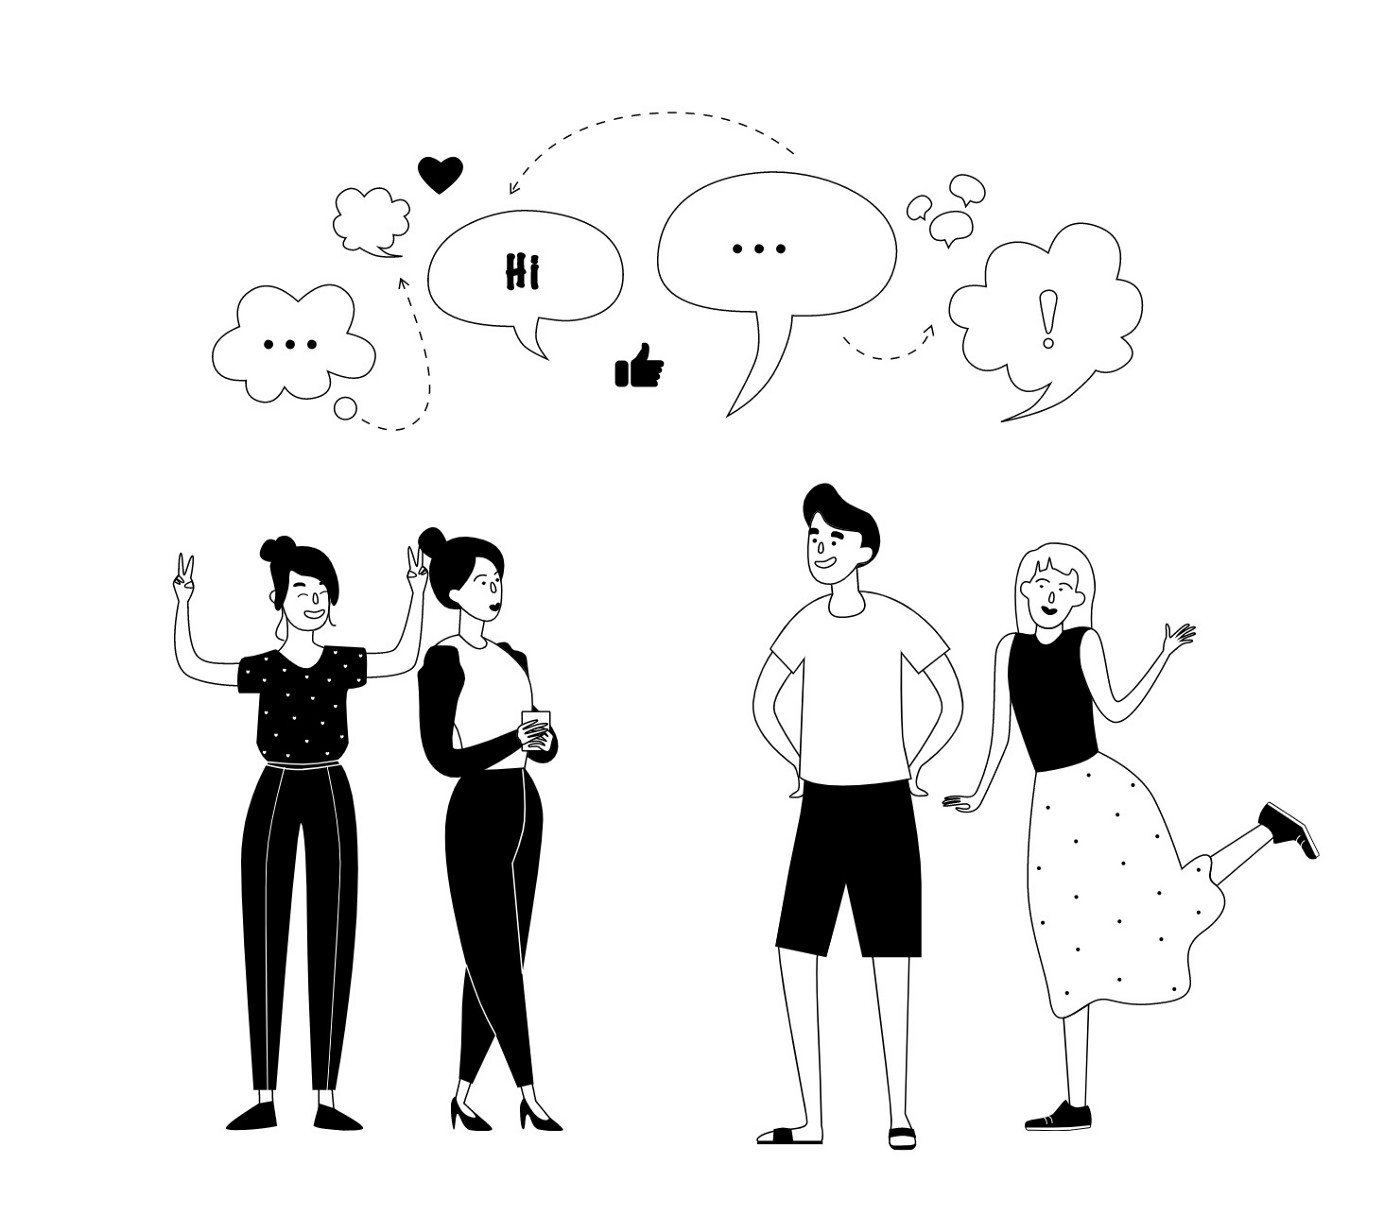 Four individuals happily discussing a topic and/or possibly meeting each other for the first time.